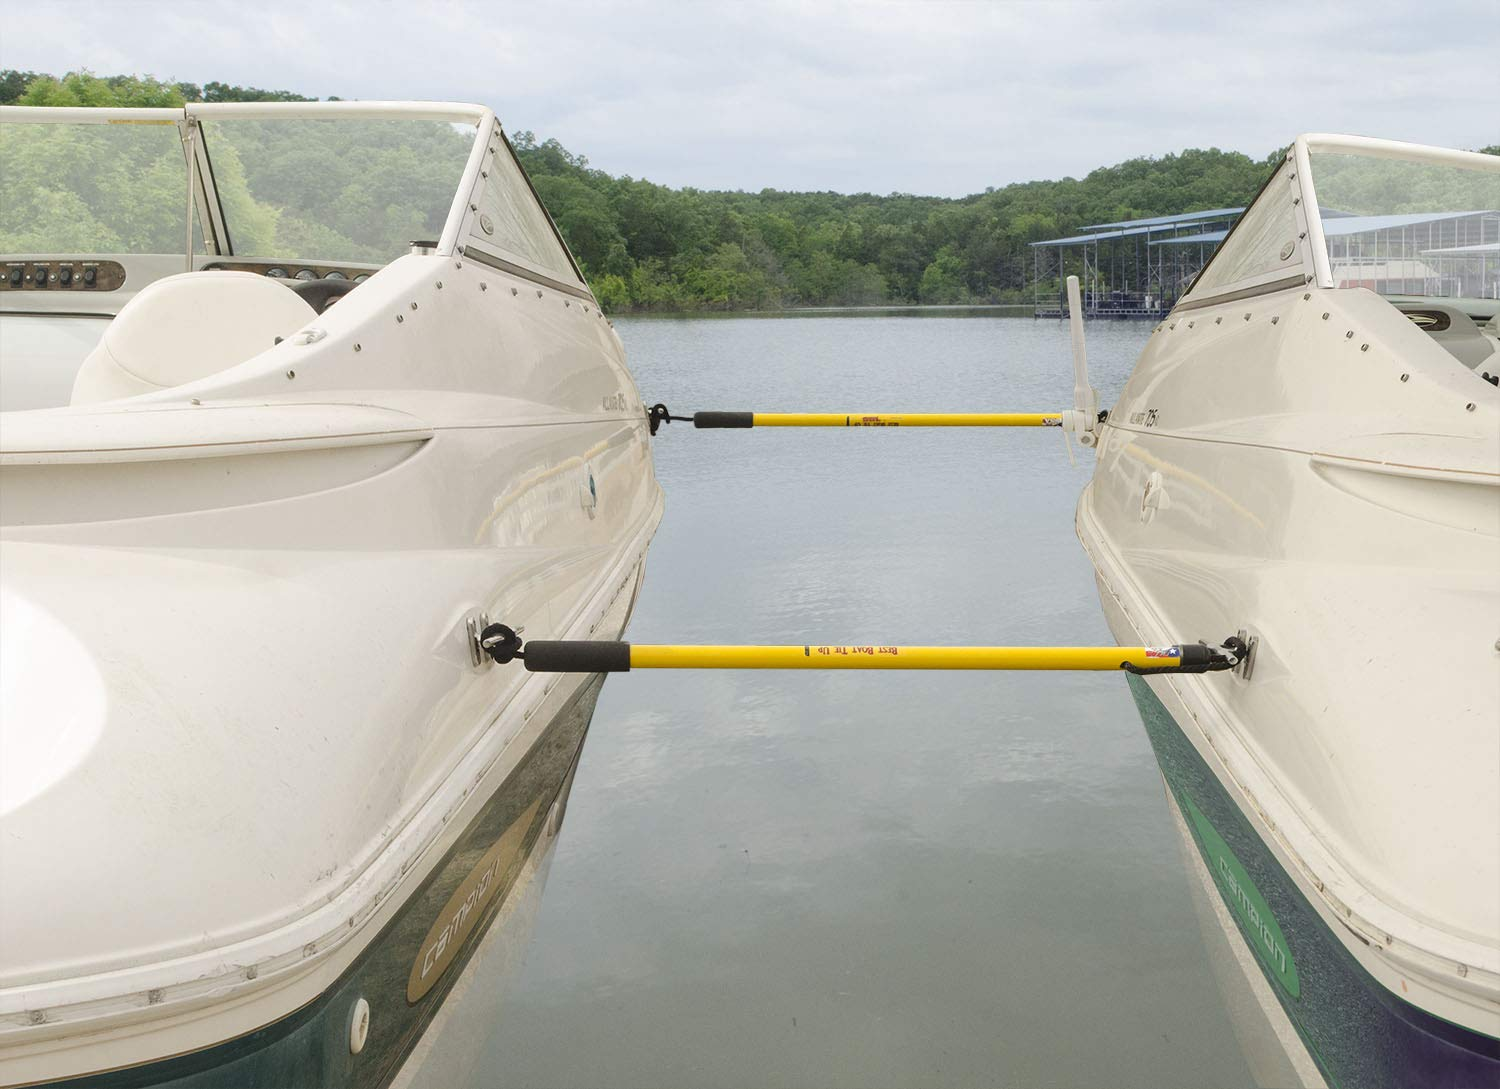 Rite-Hite Boat Tie Up - 2 Pack in White or Yellow, Tie Up Without Having to Get Out of The Boat (Yellow, 15) by RITE-HITE